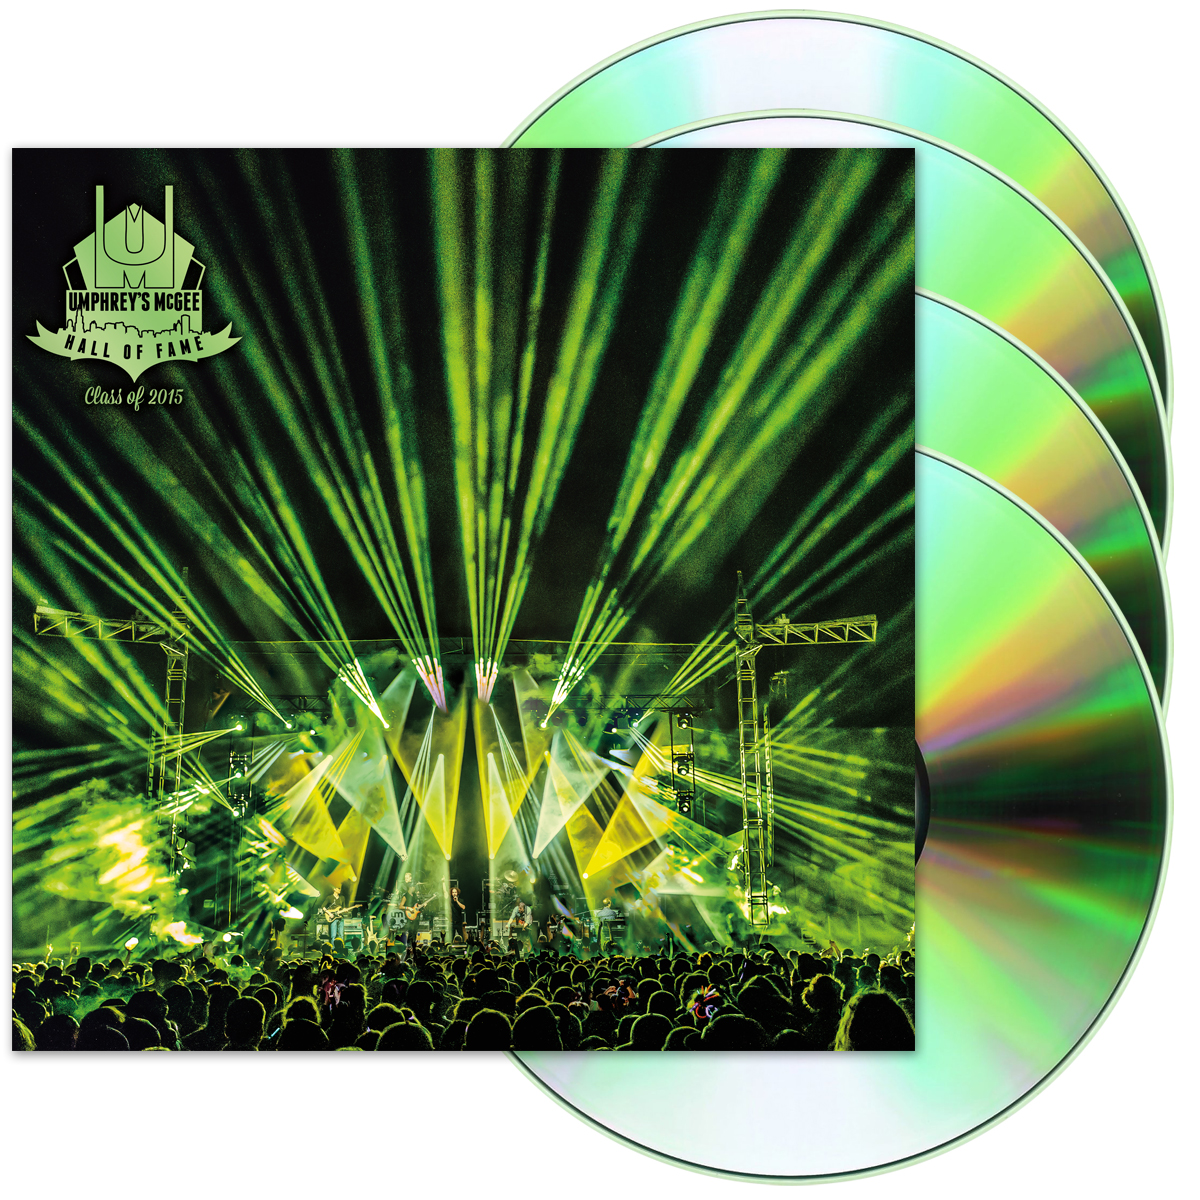 Hall of Fame: Class of 2015 CD (4-Disk Set)